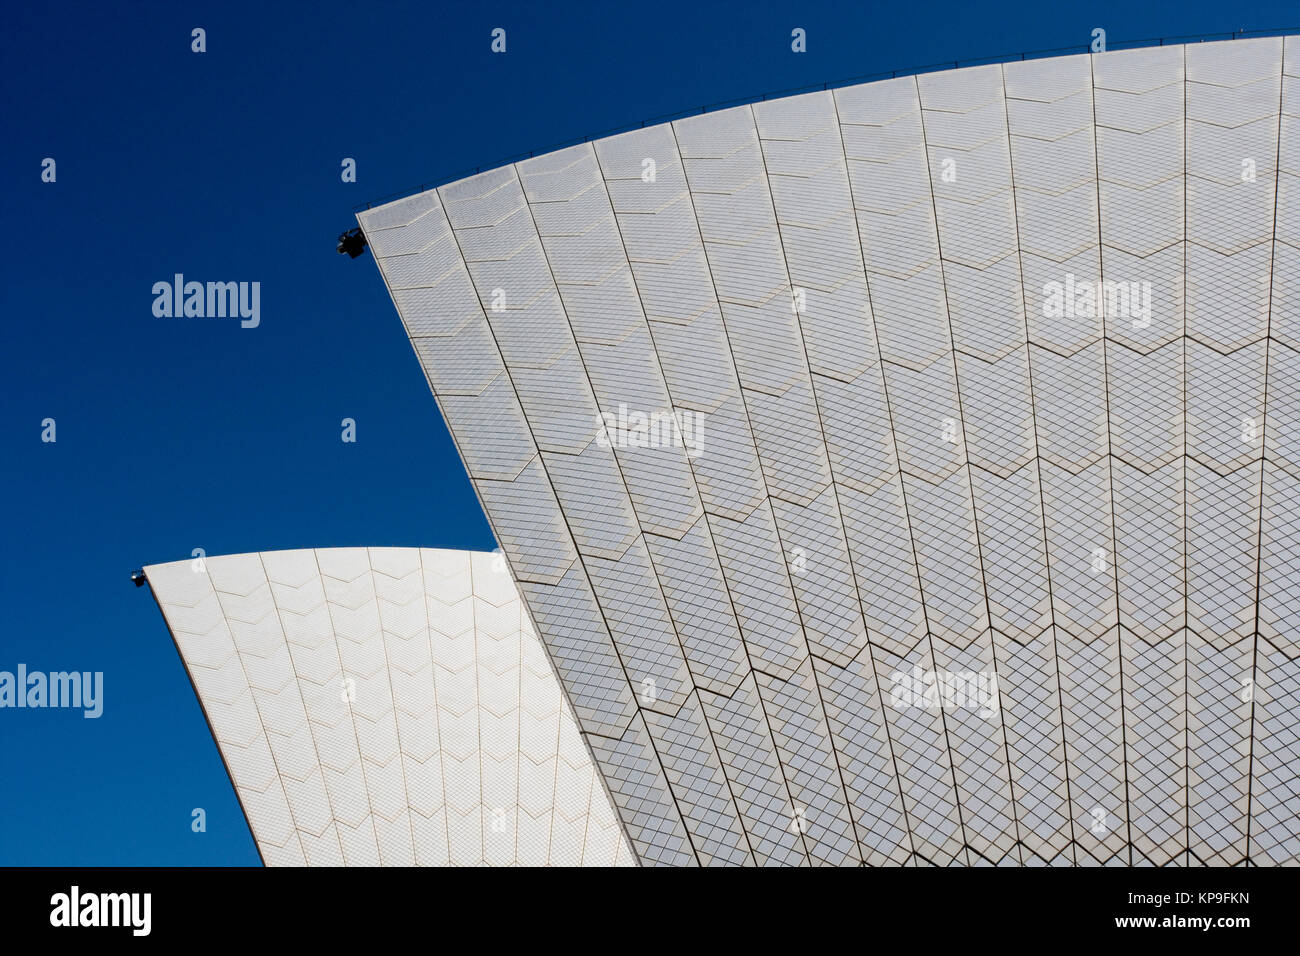 Detail of the roof design of the Sydney Opera House in the city of Sydney in New South Wales, Australia. - Stock Image